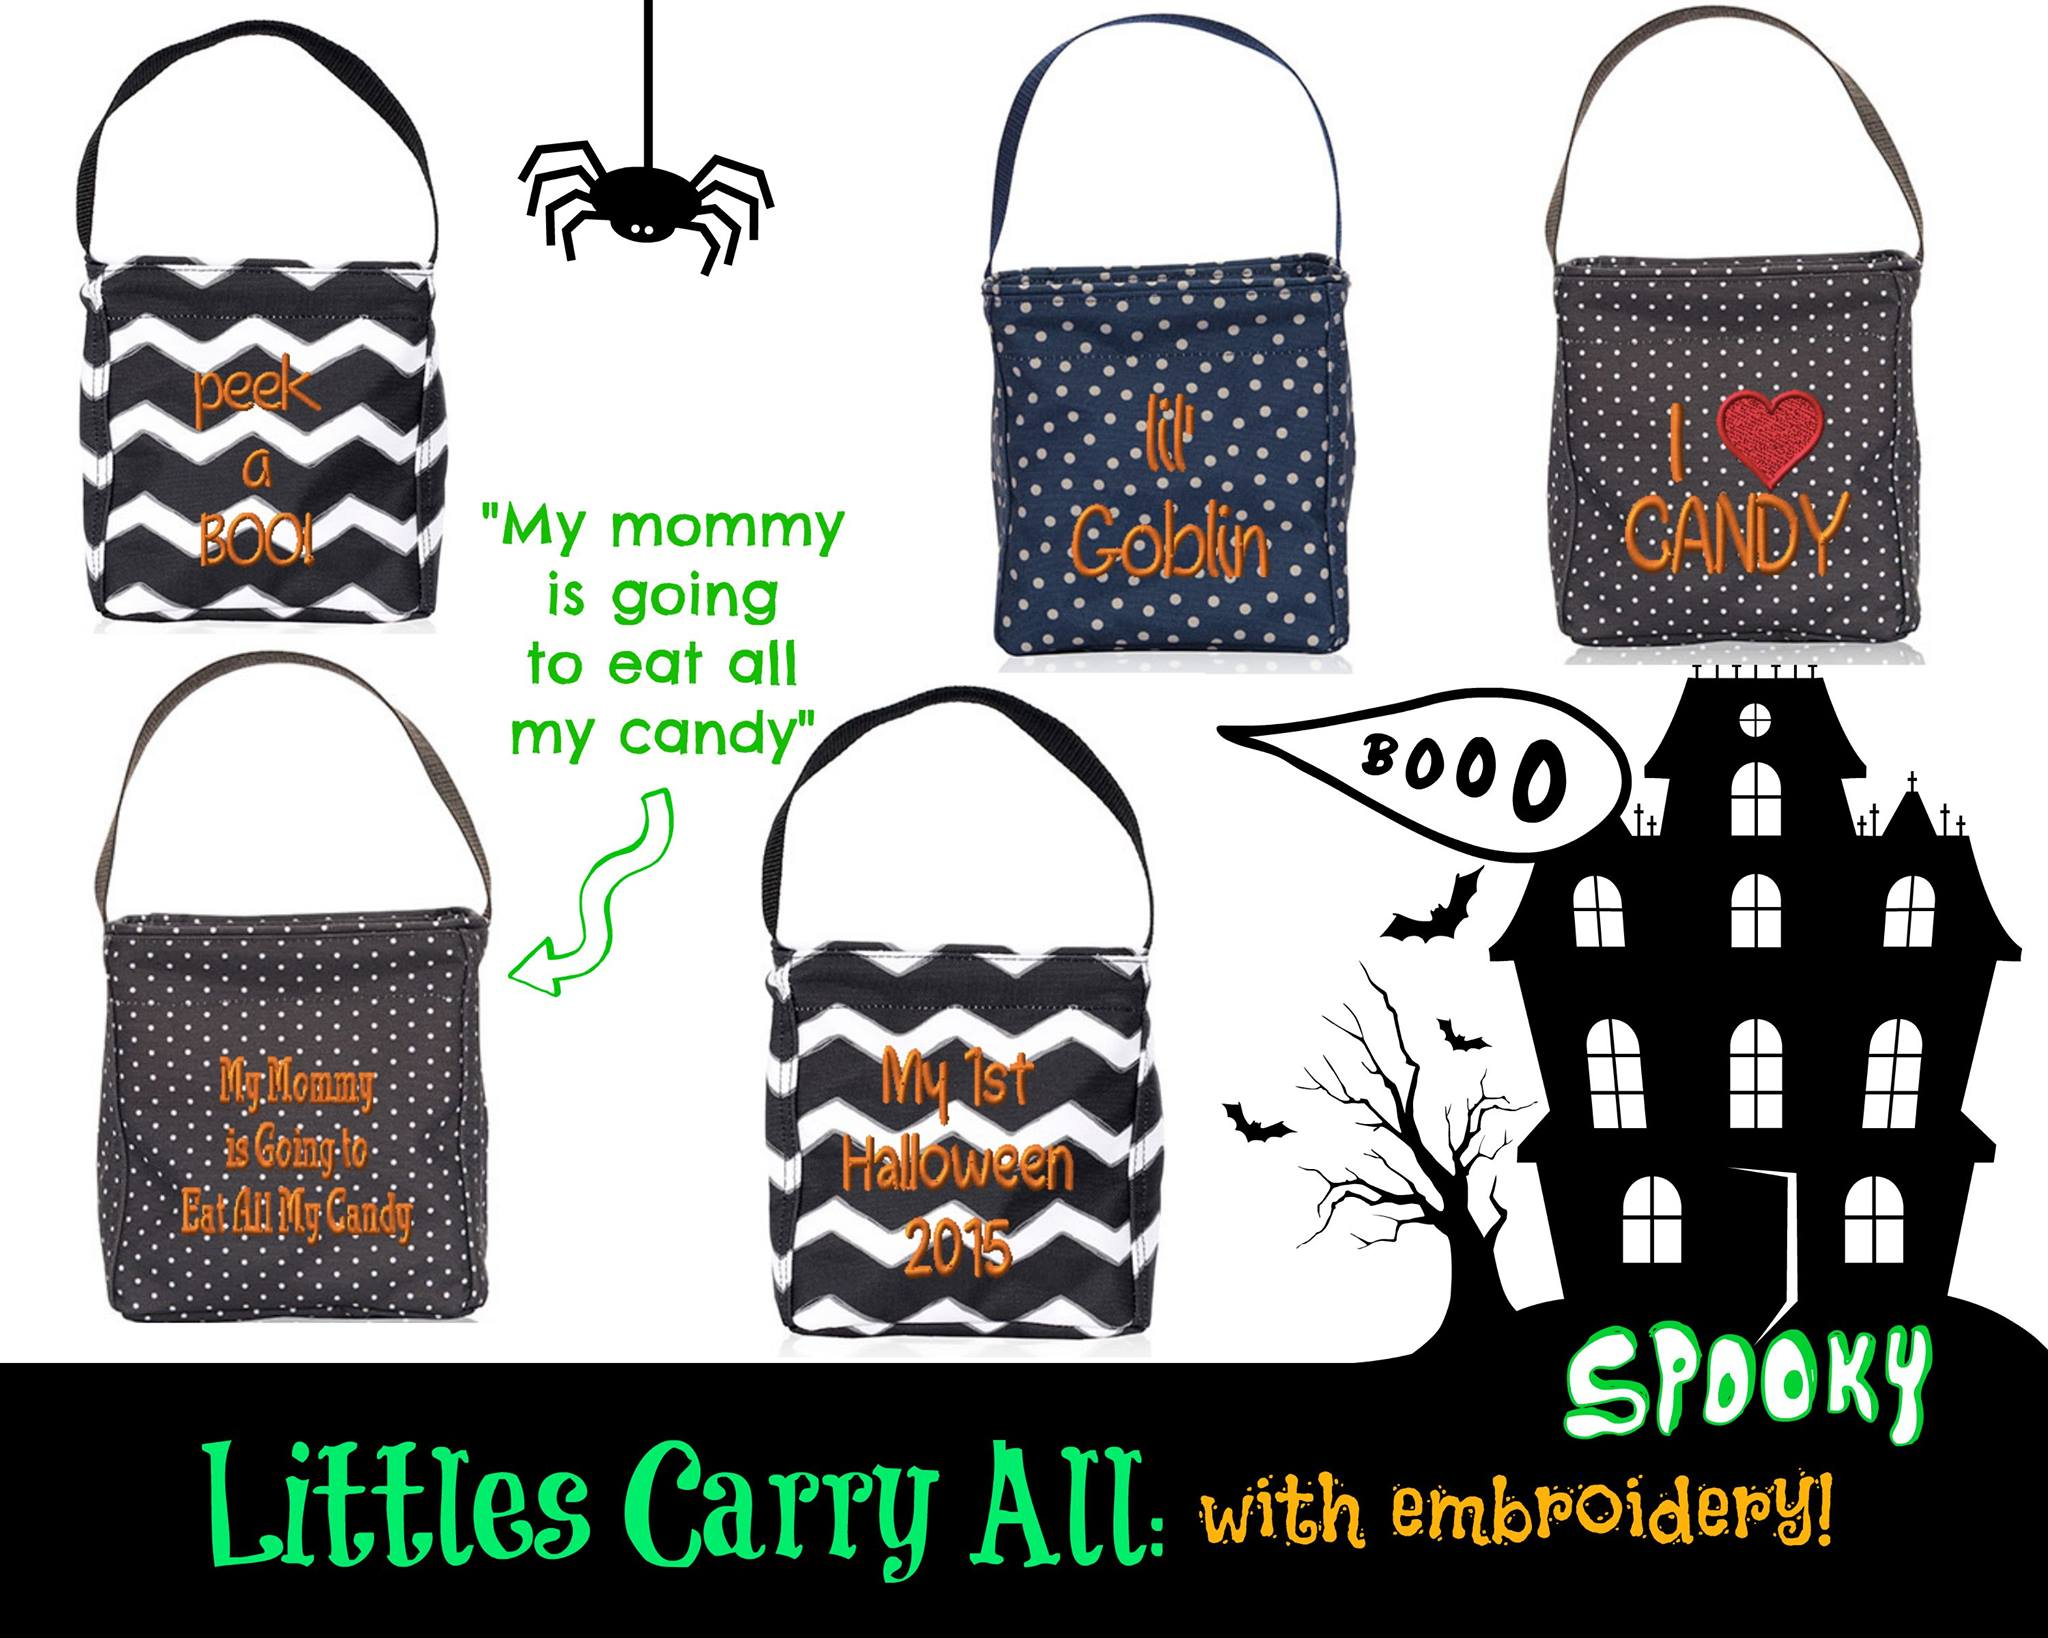 Thirty one november customer special 2014 - 0 01 02 03